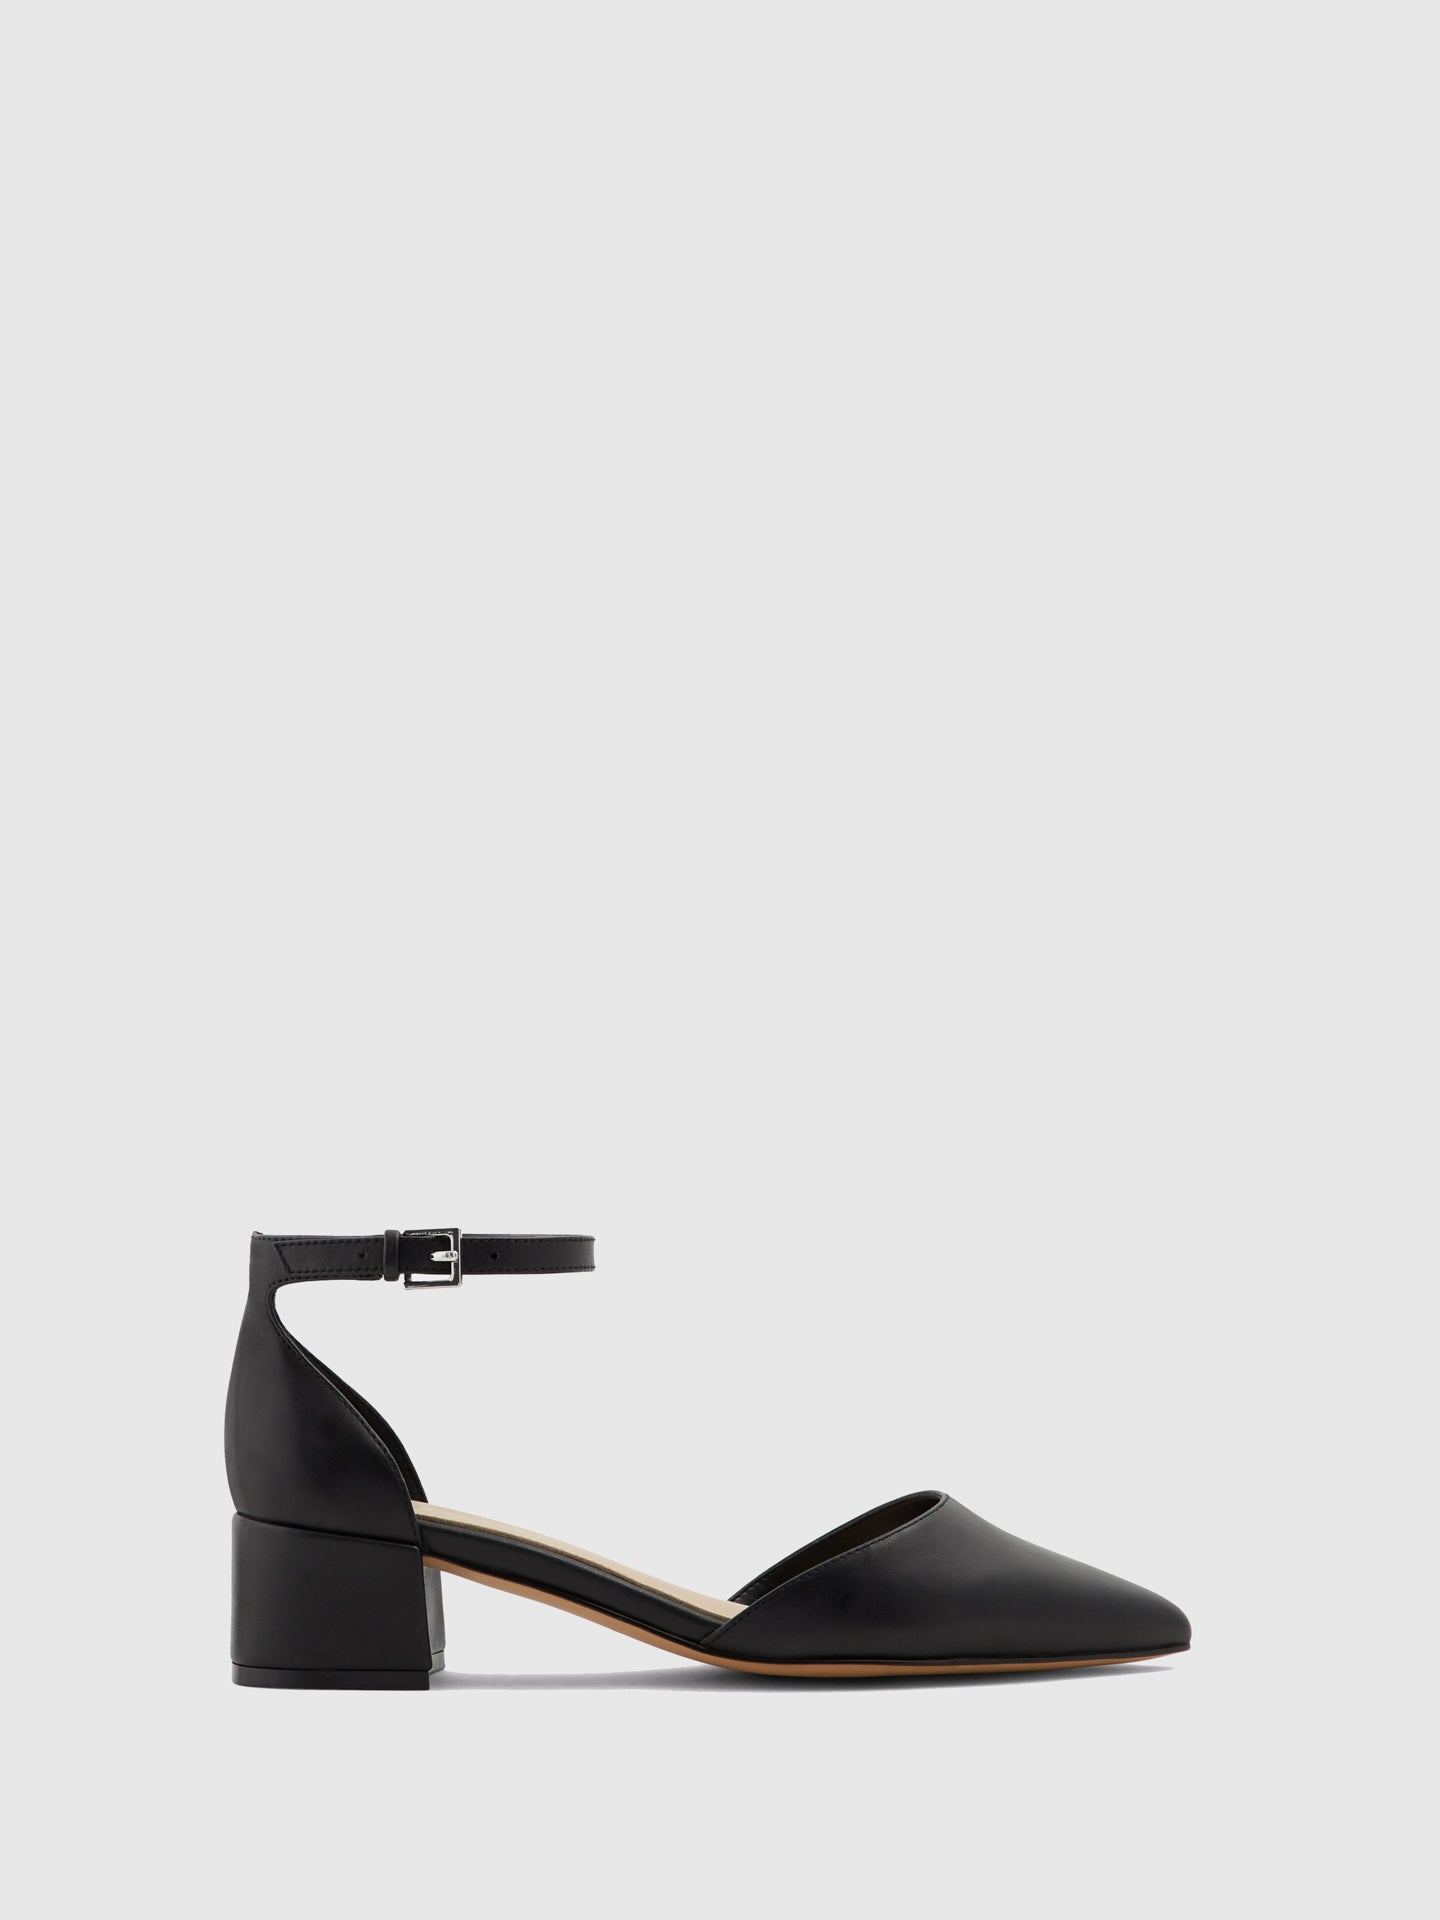 Aldo Black Leather Ankle Strap Shoes